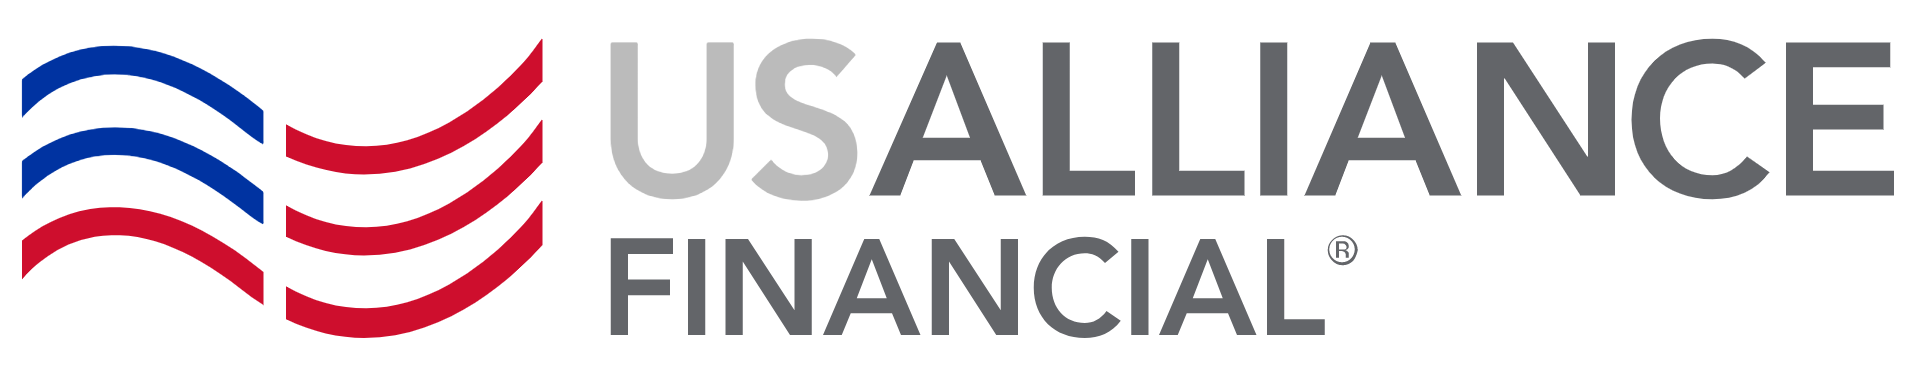 USALLIANCE Financial logo